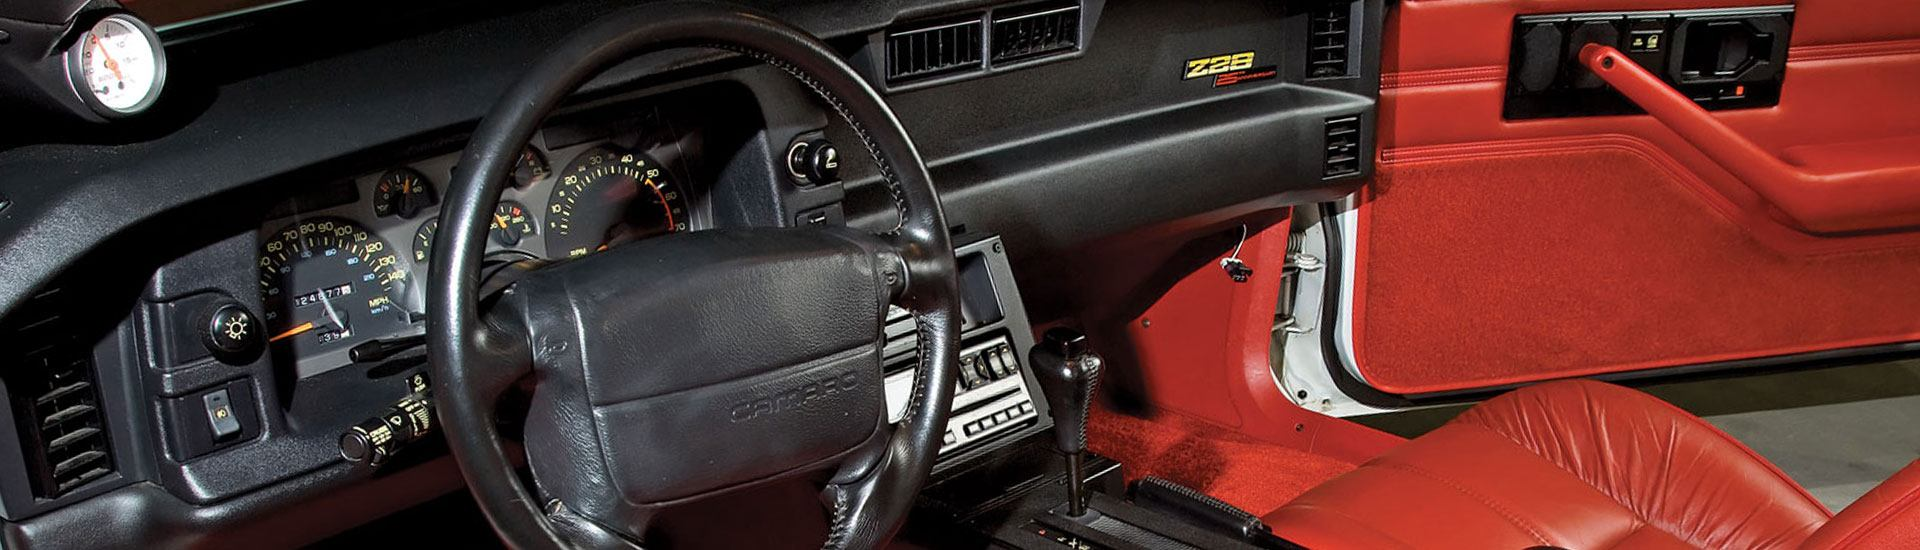 1990 Chevrolet Camaro Dash Kits